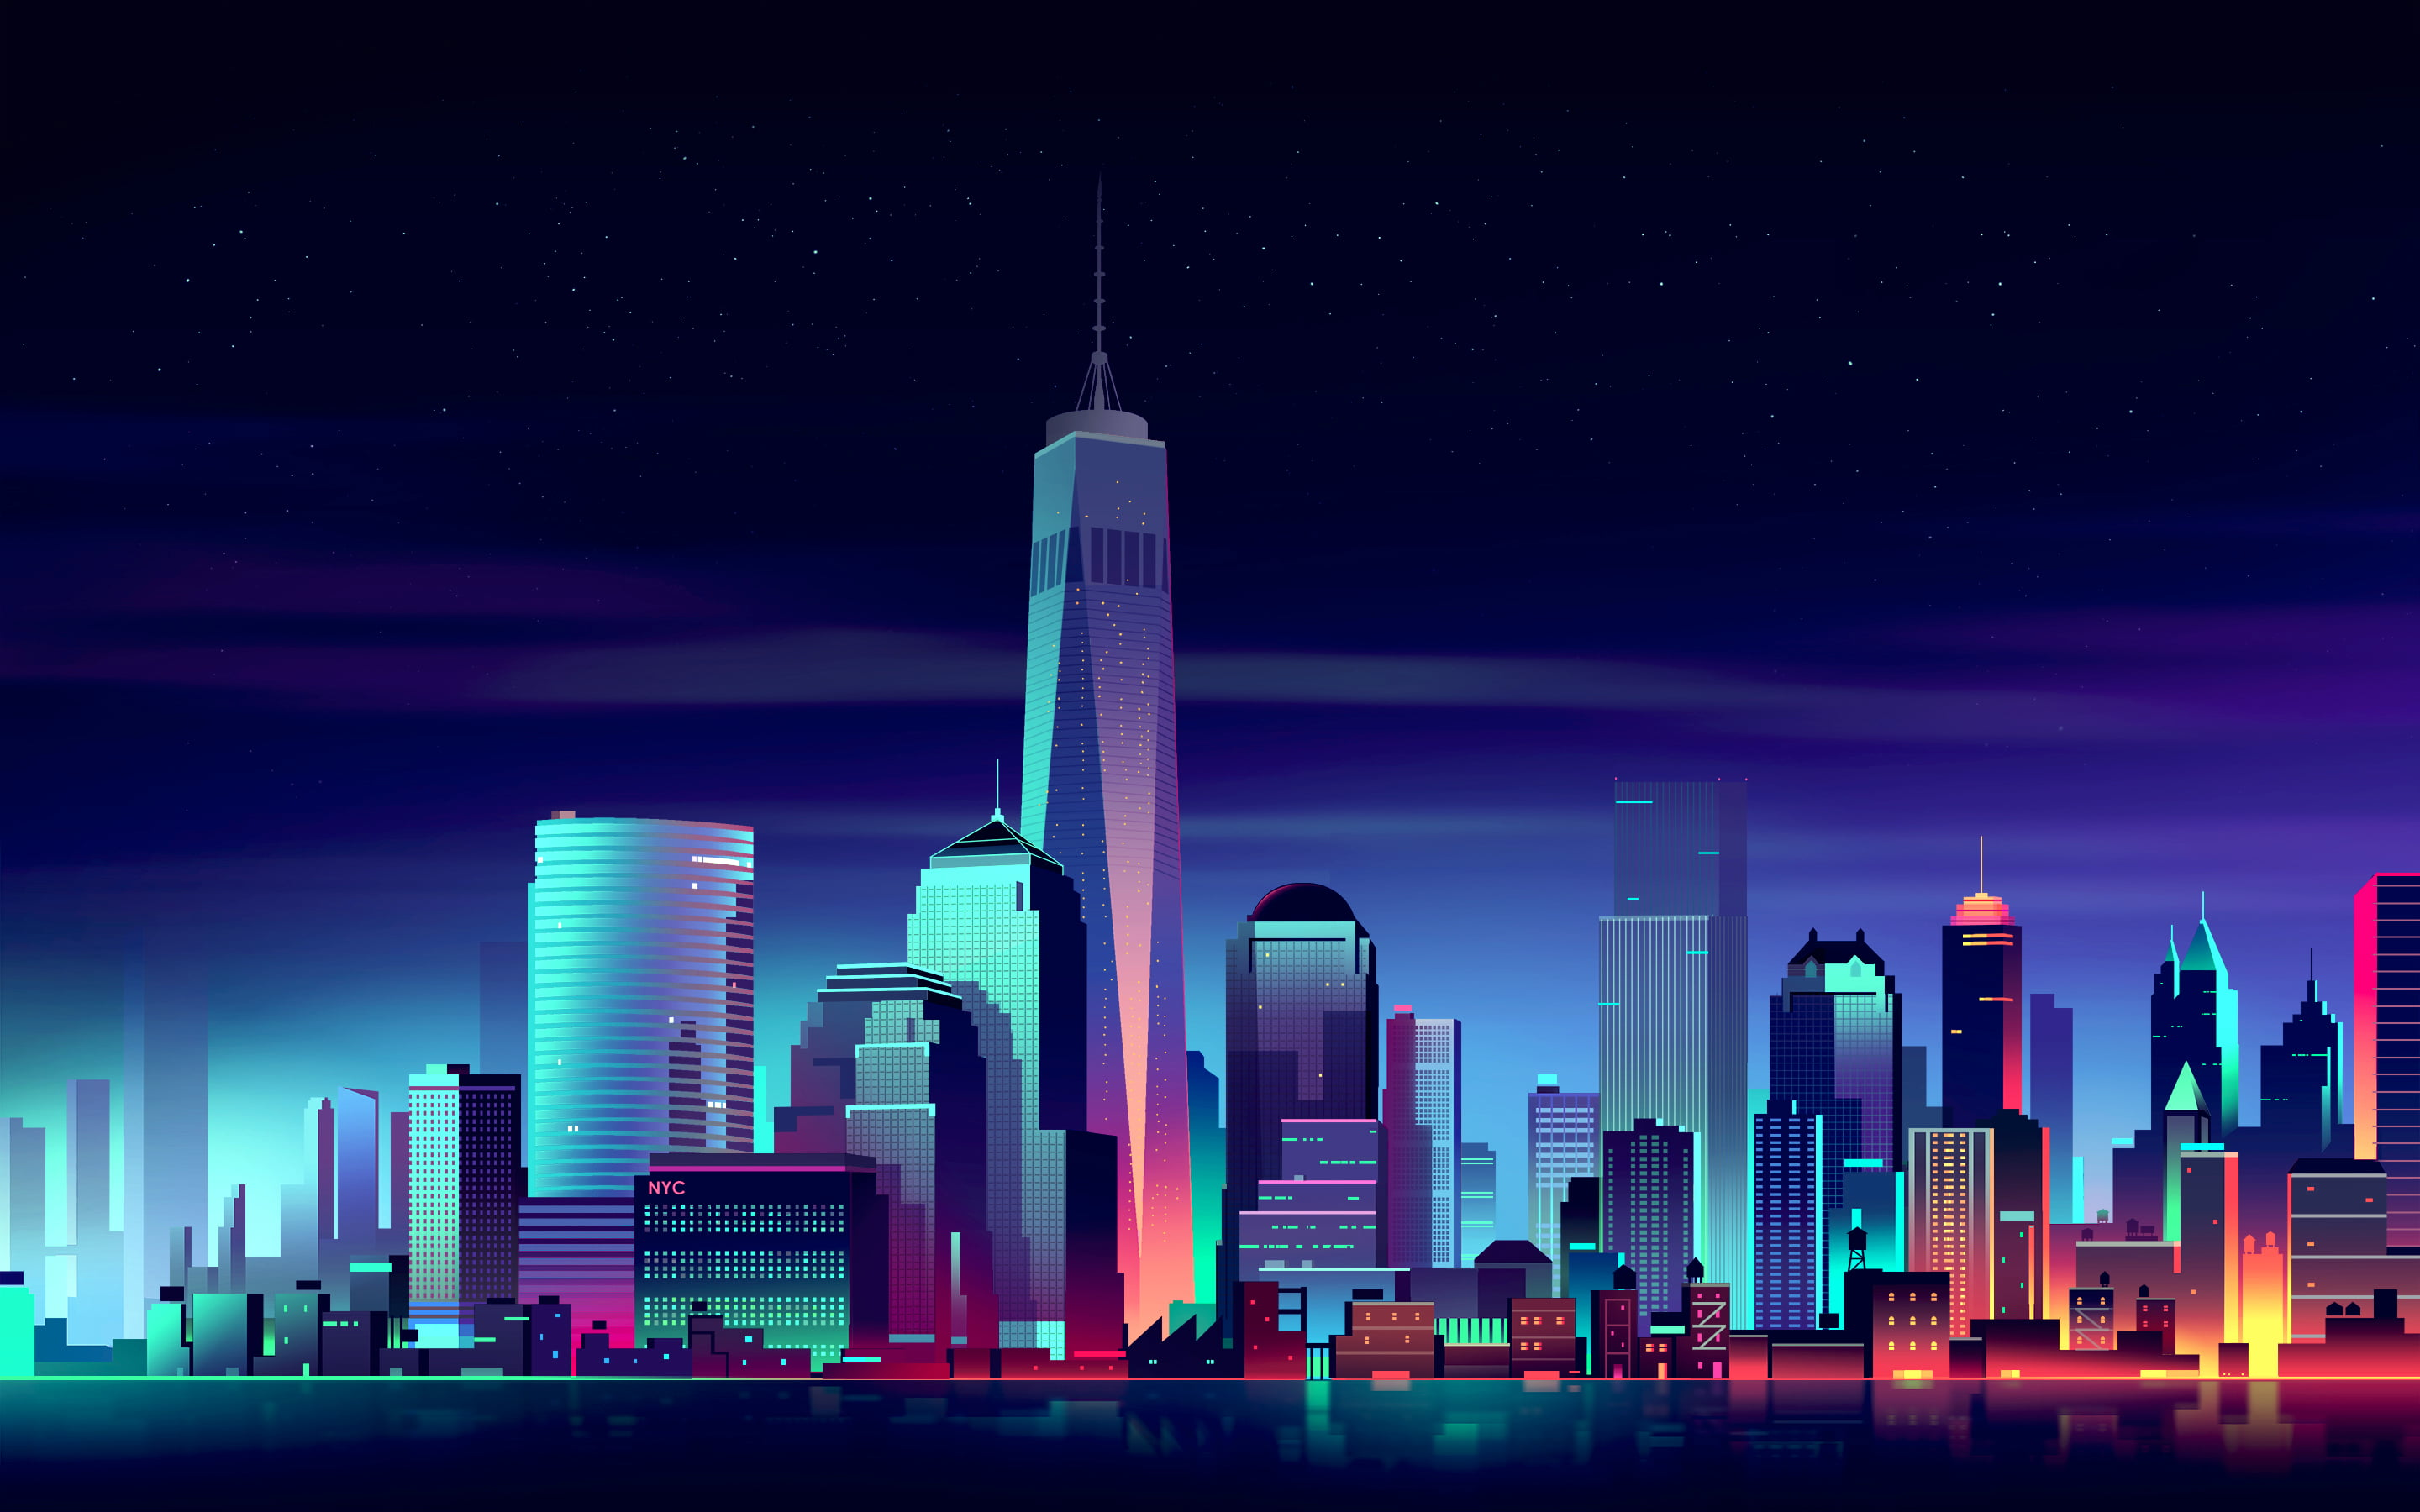 Iphone 2g Wallpaper For Iphone X Photo Of High Rise Buildings Animated Artwork Hd Wallpaper